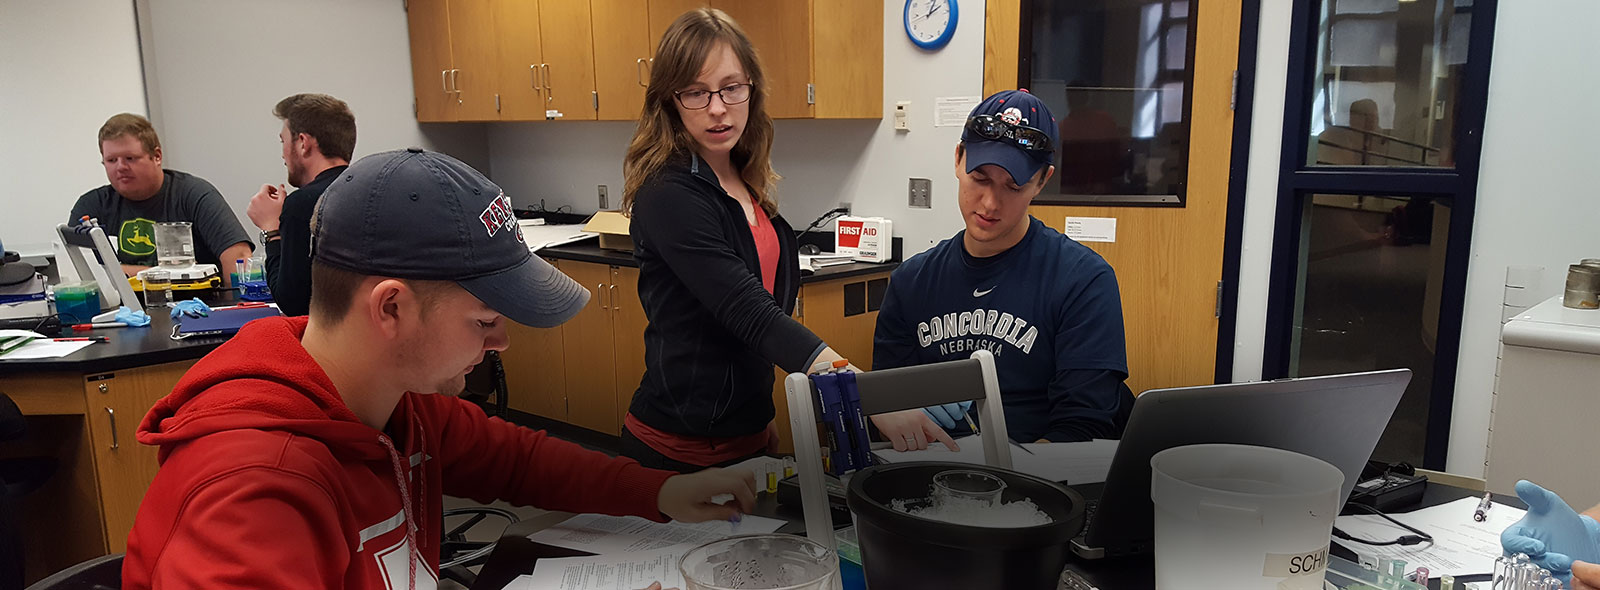 Ellen Emanuel working with students in a lab